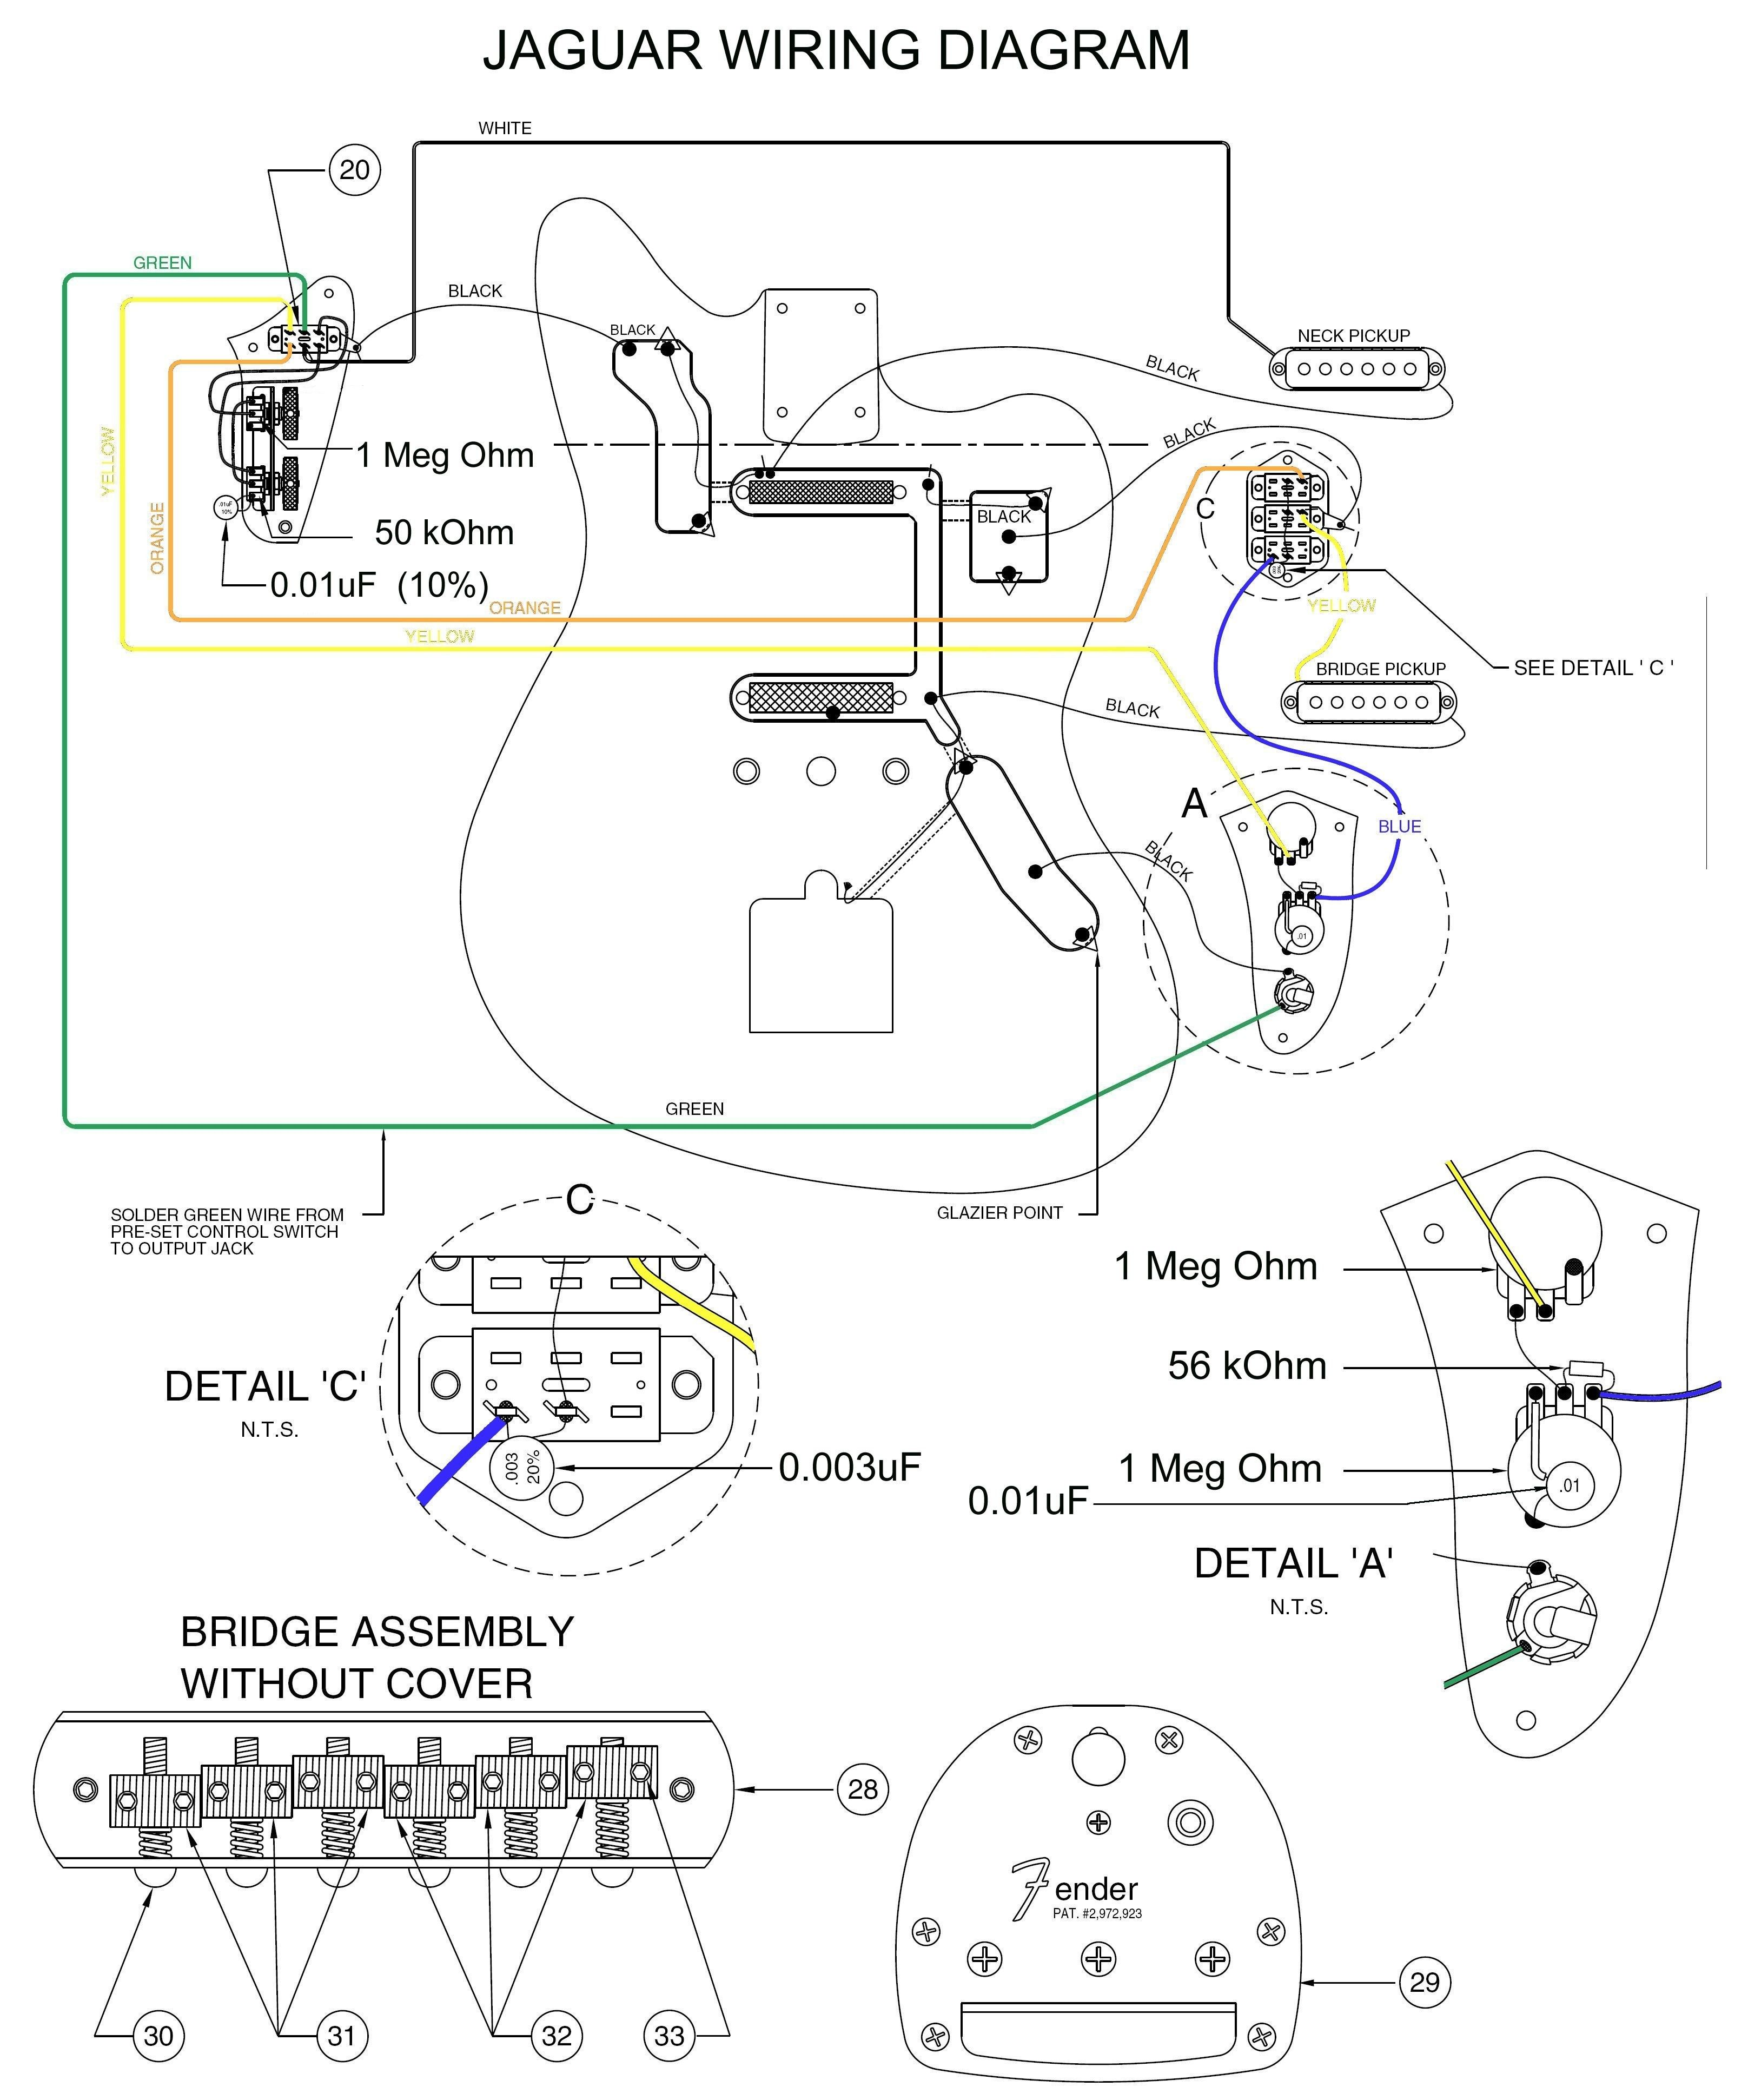 Fender Jaguar Wiring Diagram In 2020 Fender Jaguar Squier Fender Squier